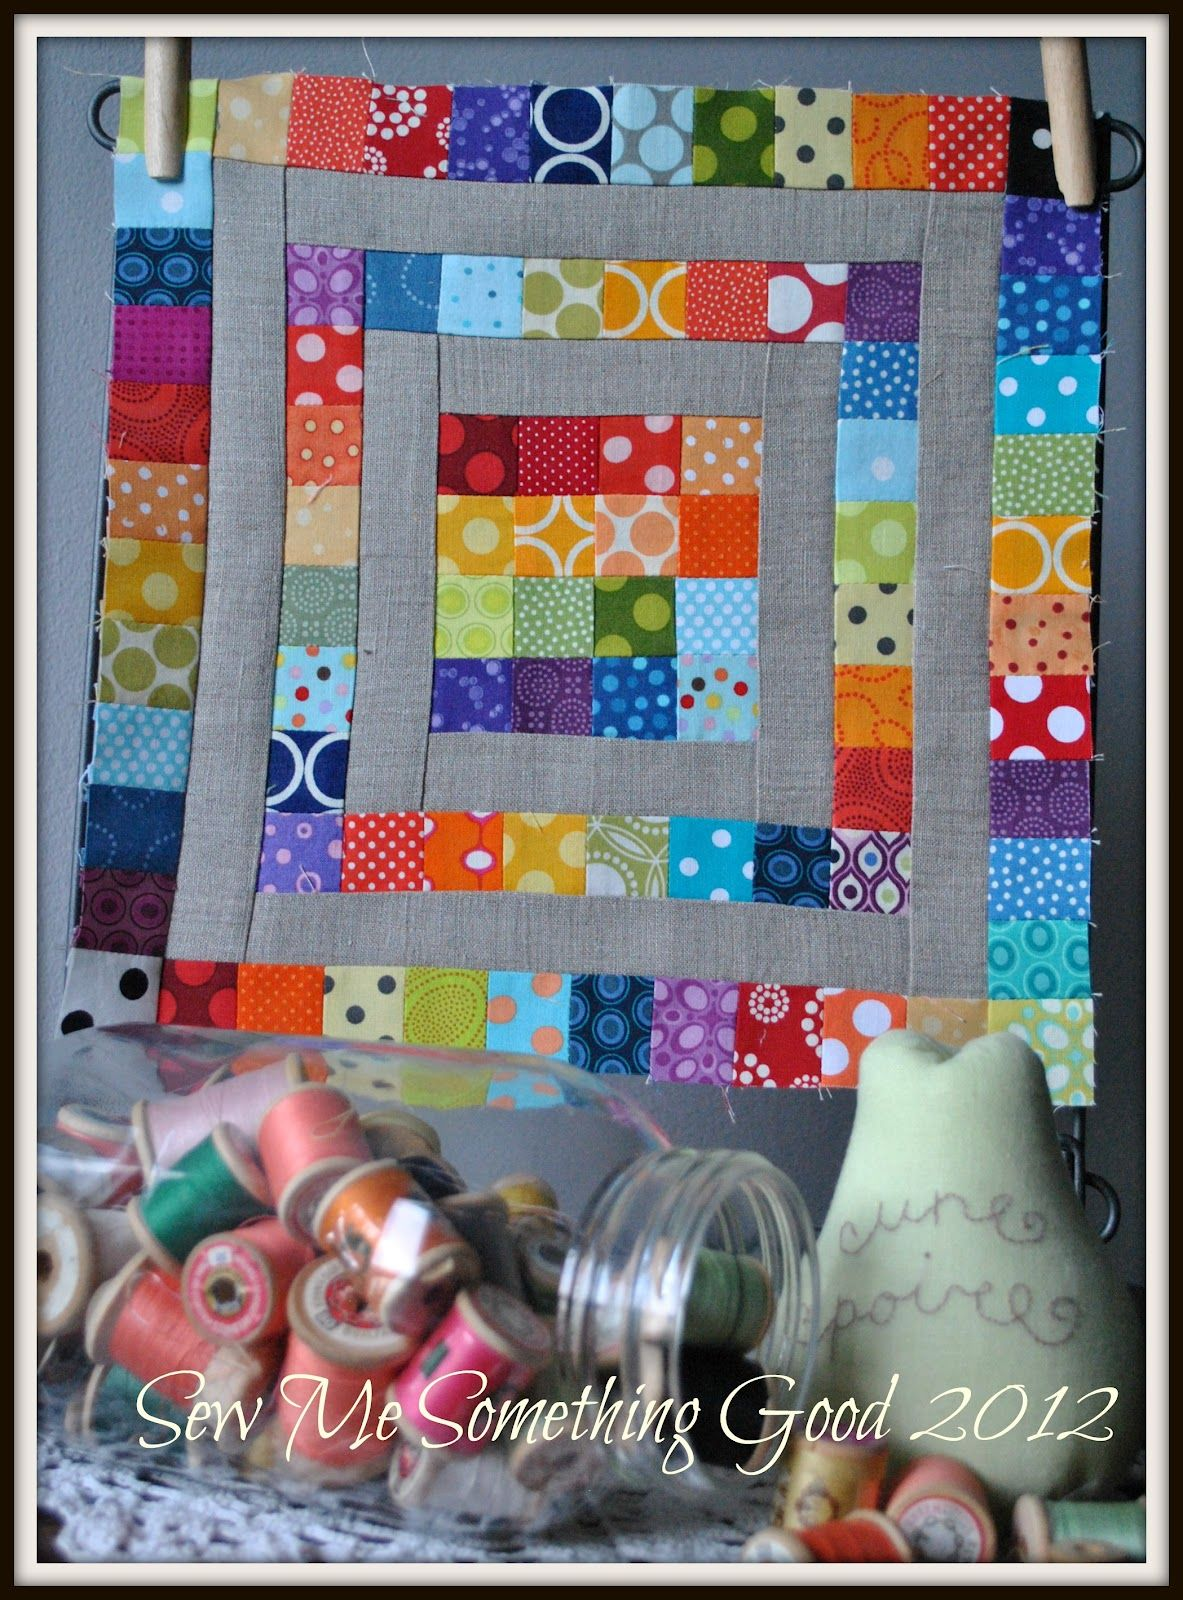 Sew Me Something Good: C'mon over...I've got dots on dots..Day # 5